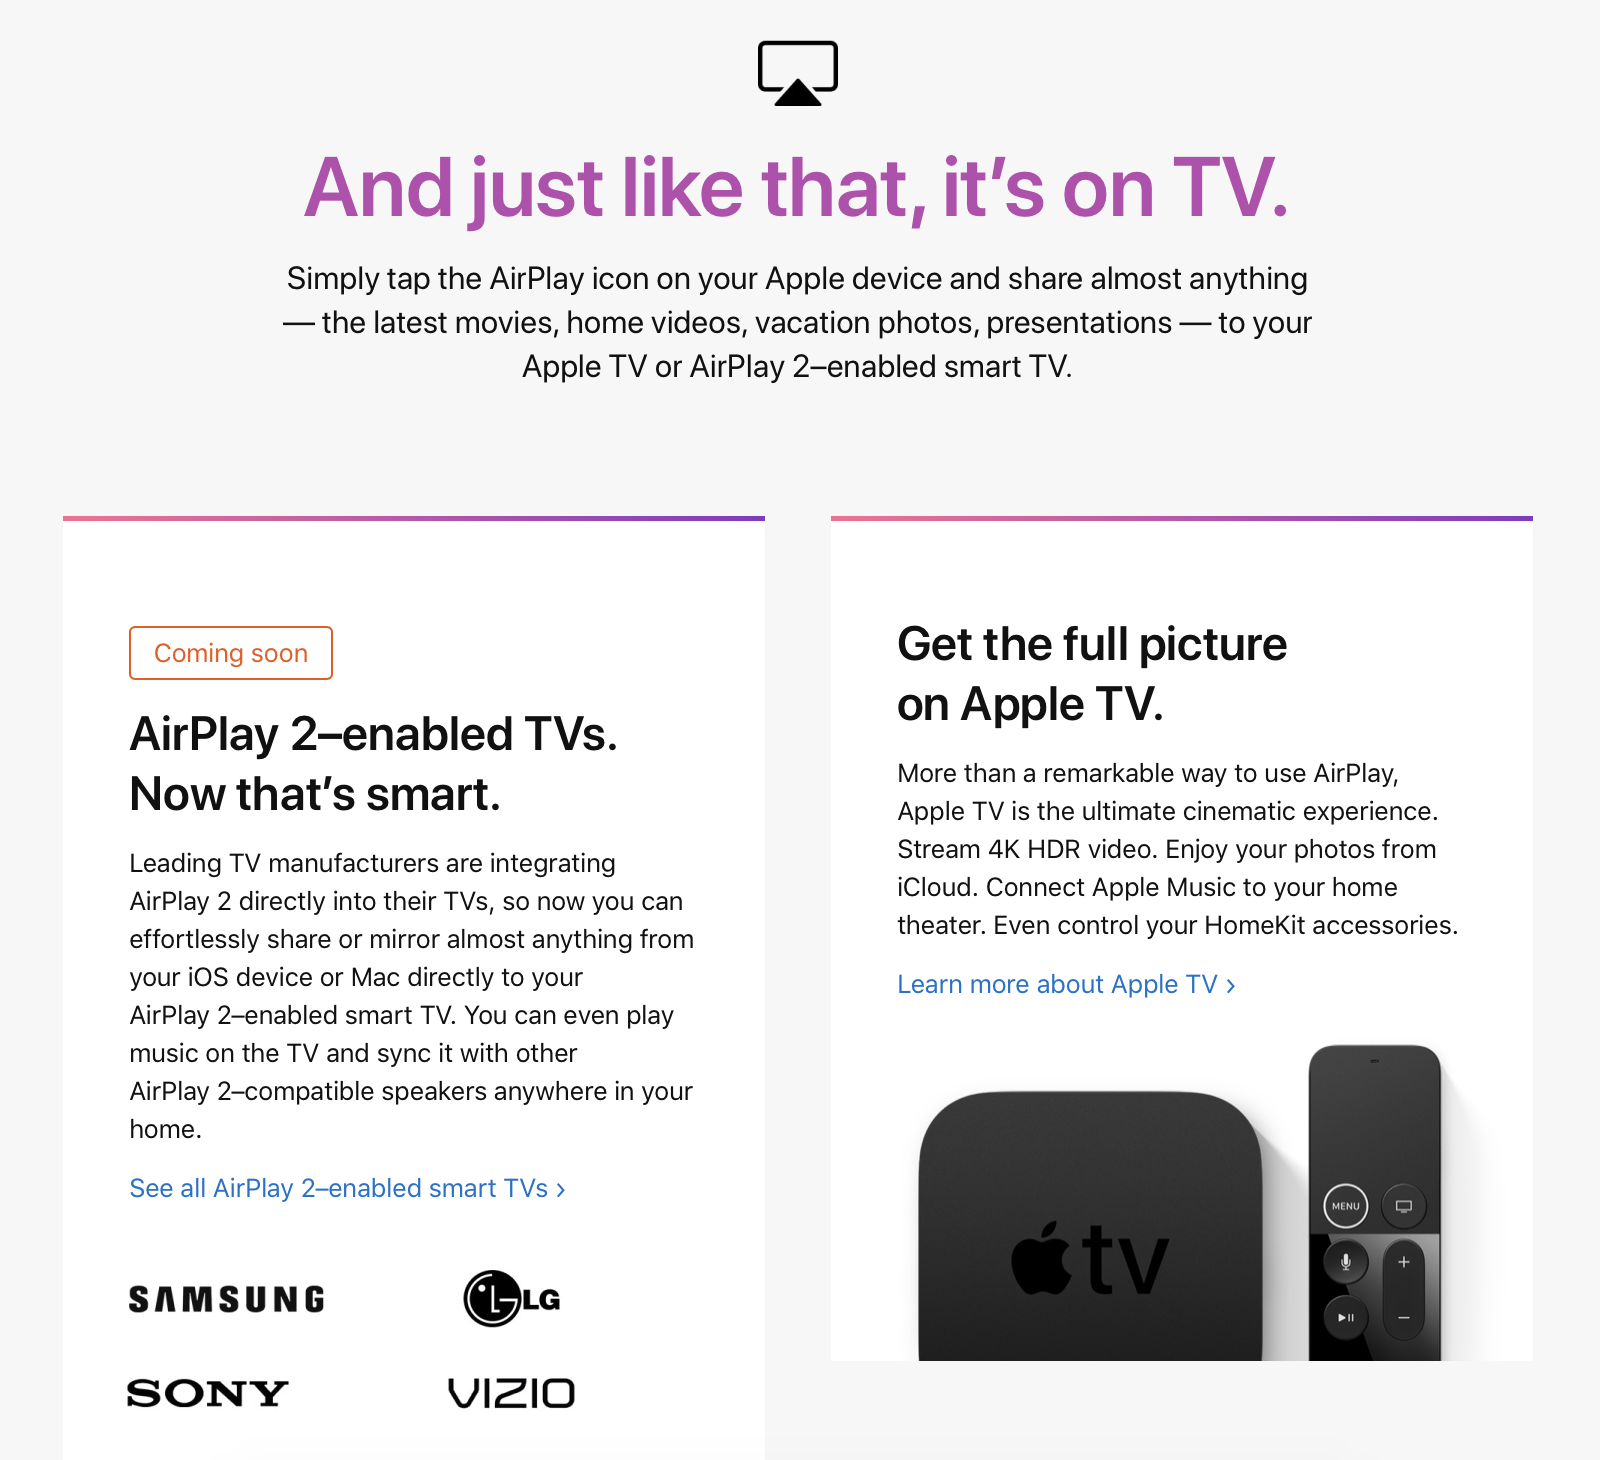 Apple is portraying AirPlay 2 televisions as booster for Apple TV, not as a sales sacrifice